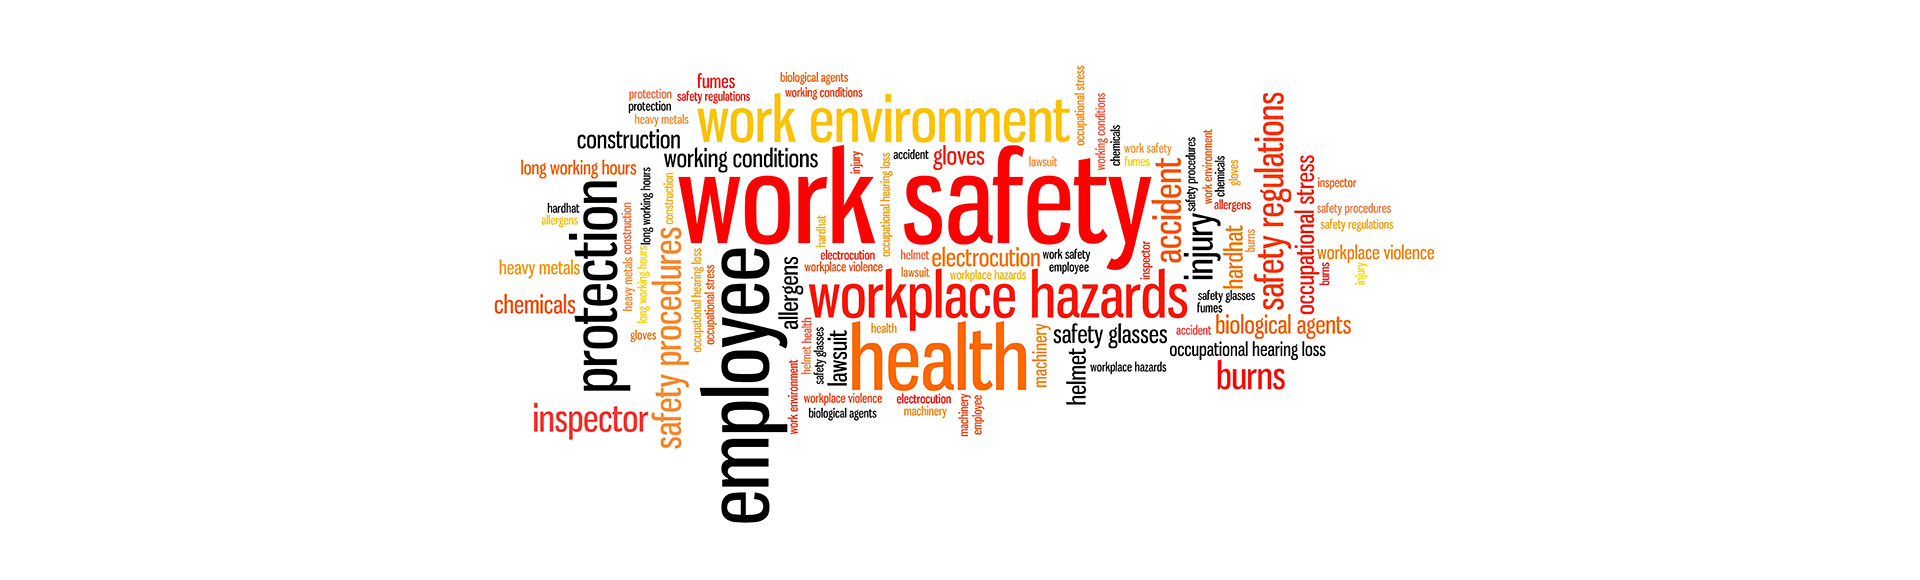 Van safety keep workers safe and save your money